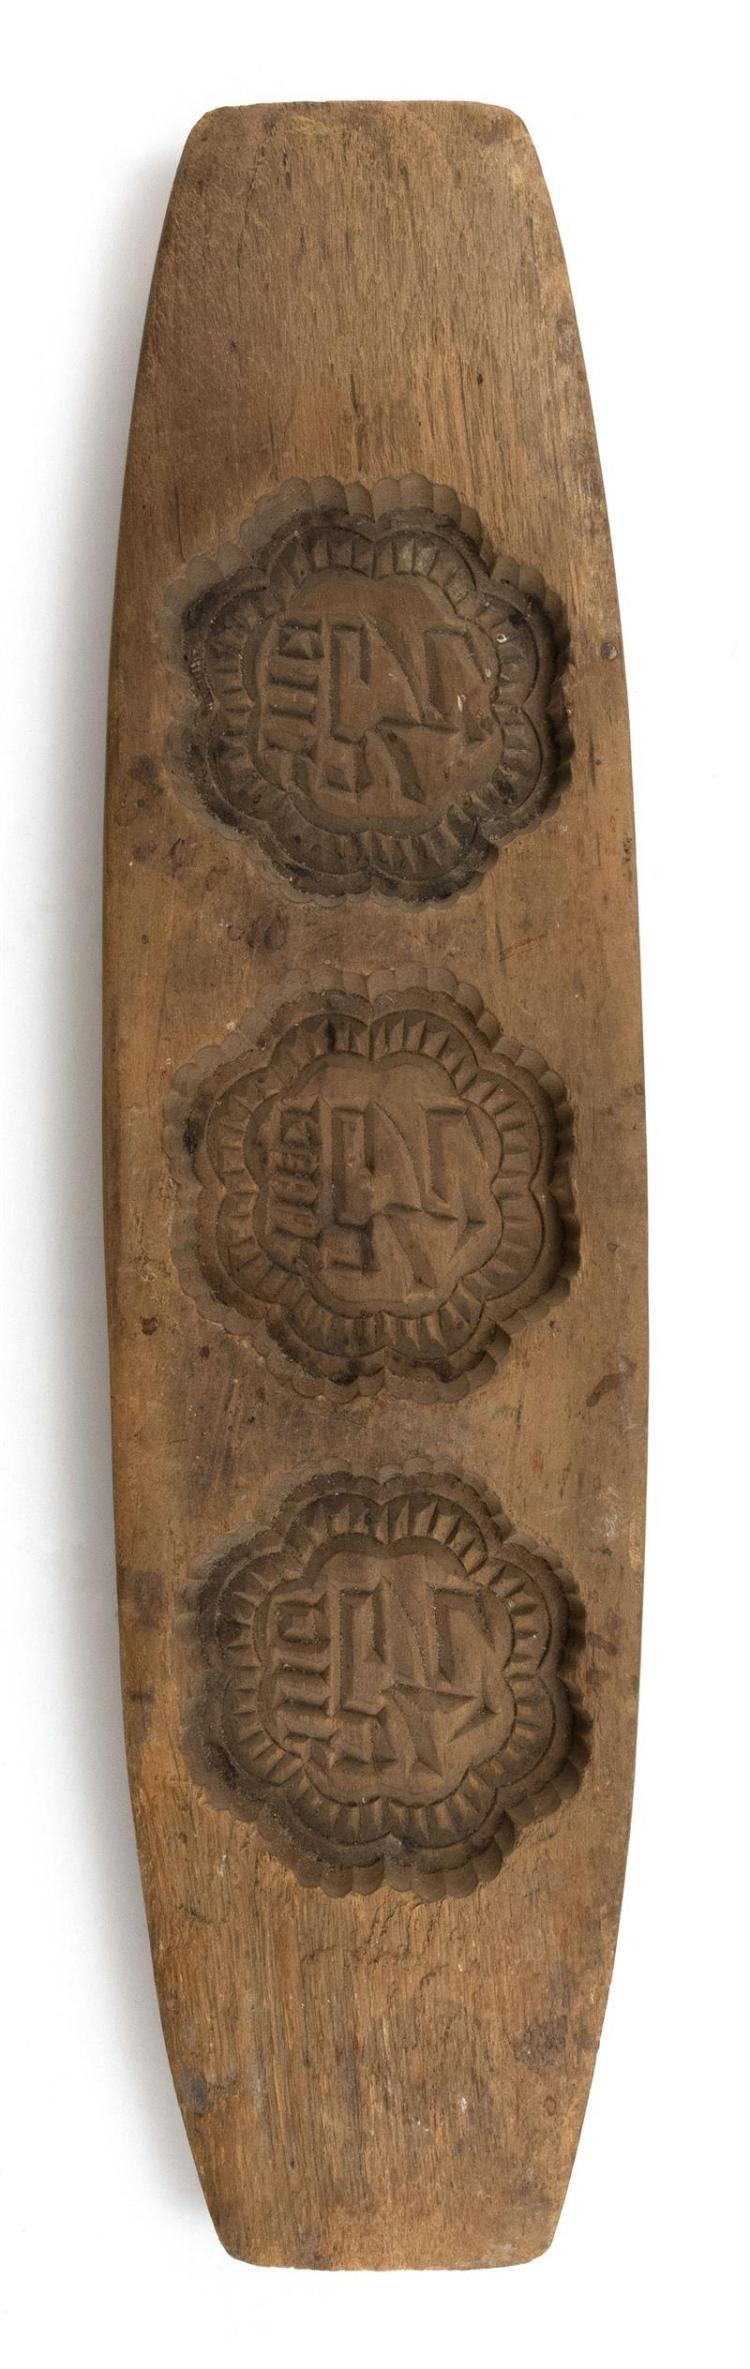 CHINESE ELMWOOD RICE CAKE MOLD In rectangular form. With three floriform sections carved with calligraphy. Length 12